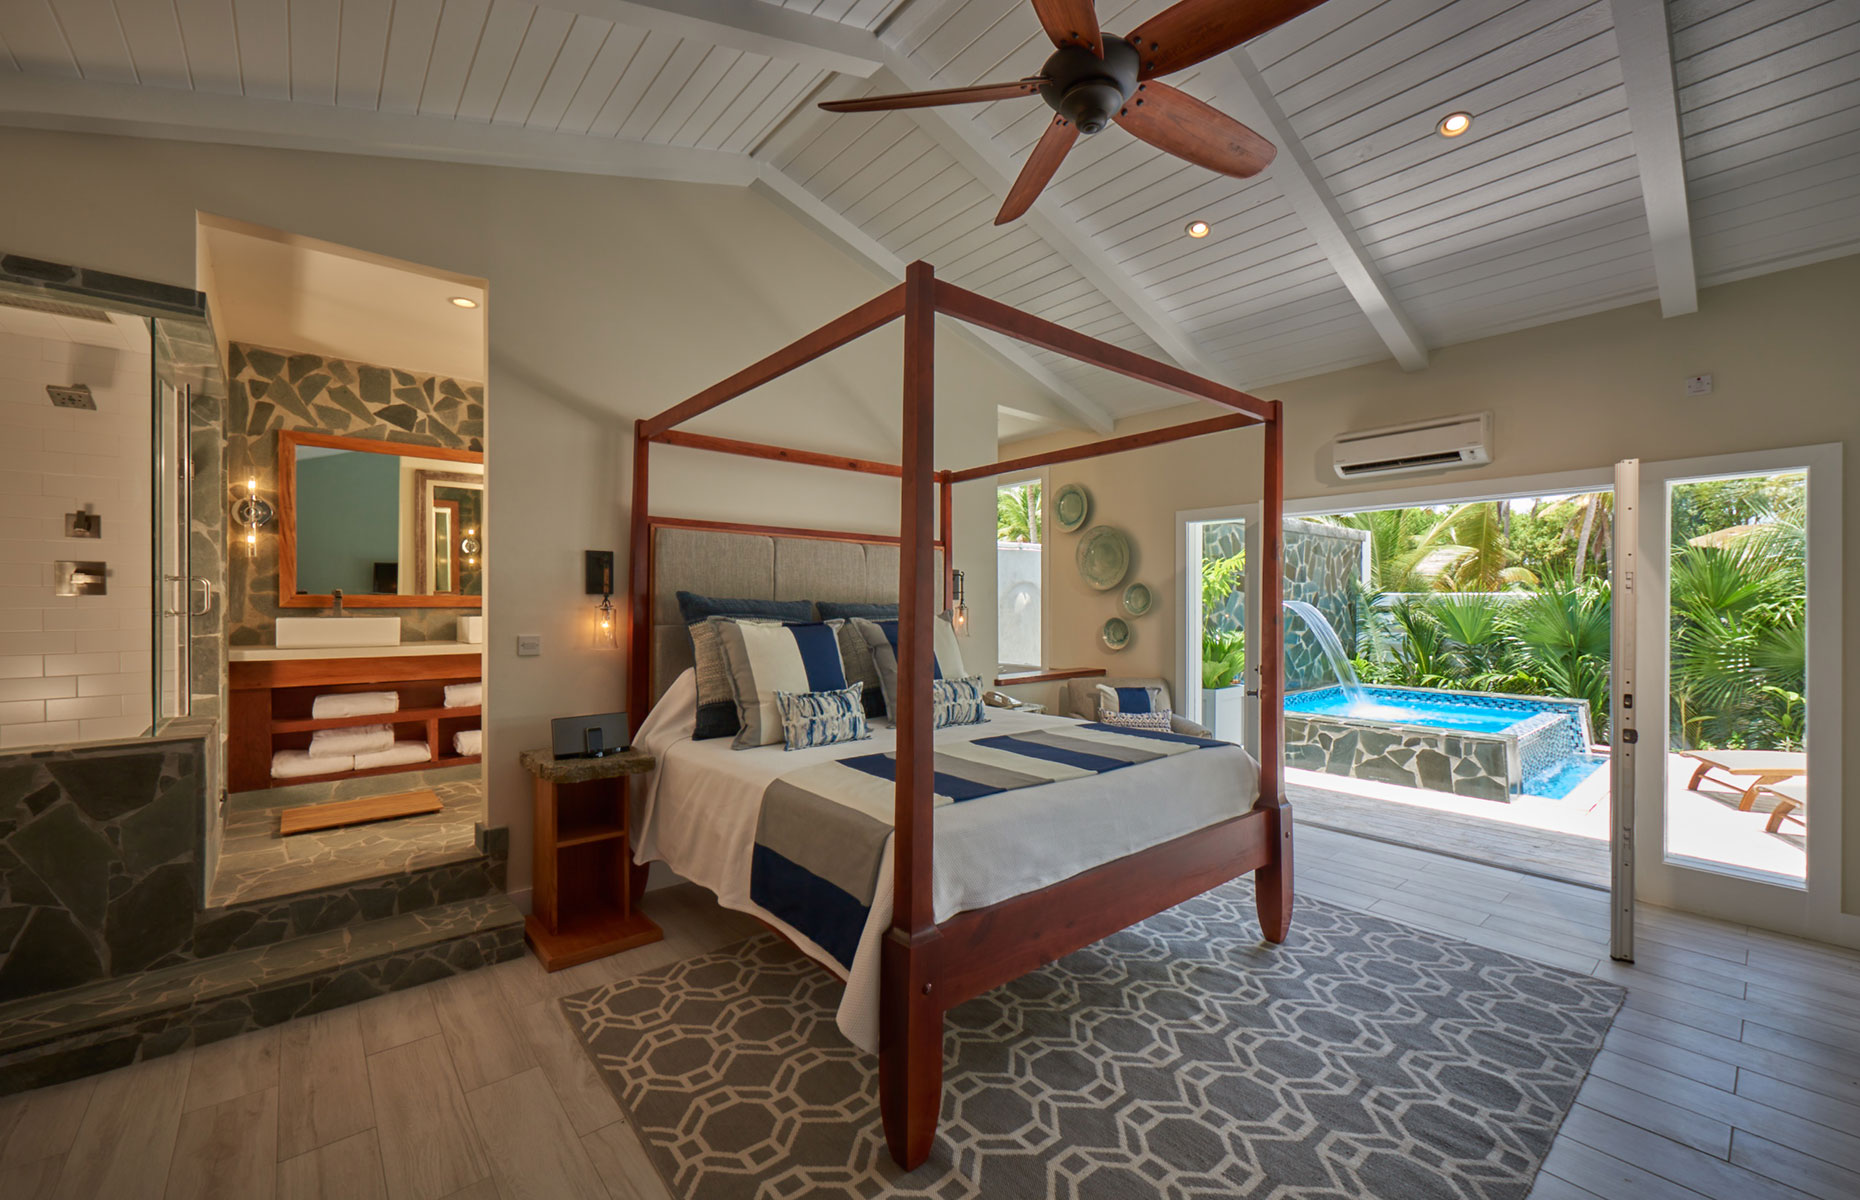 A plunge pool suite at the Serenity at Coconut Bay hotel (Image: Courtesy of Serenity at Coconut Bay)